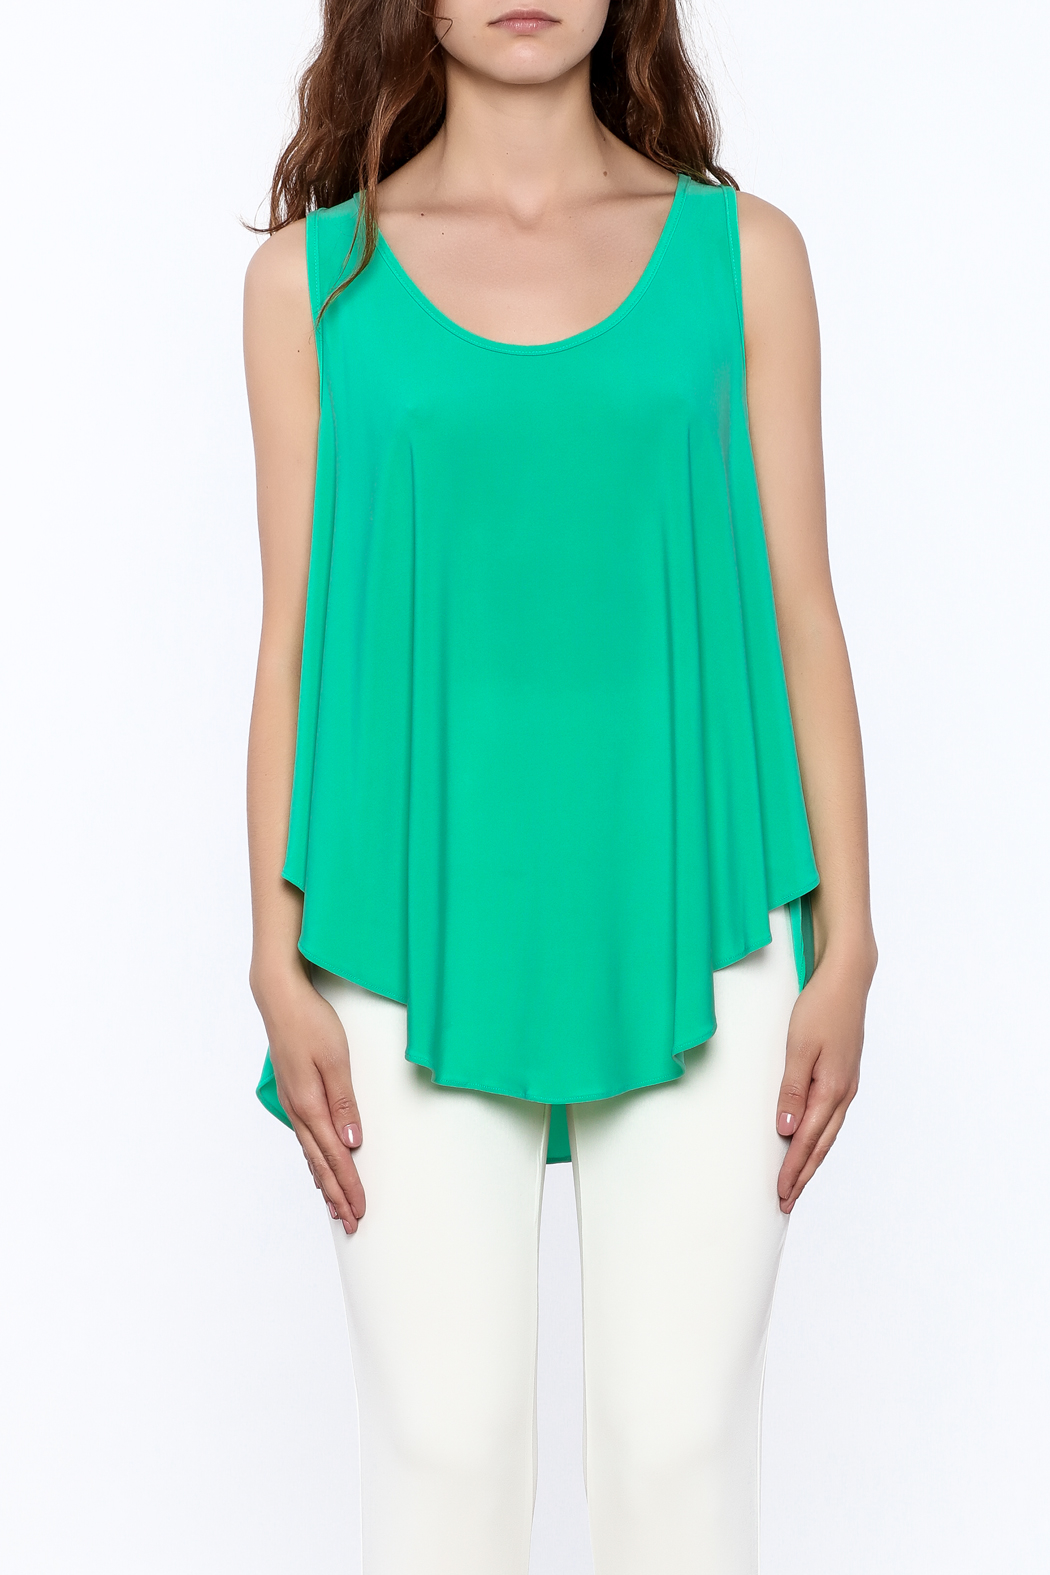 Sharon Max Green Sleeveless Swing Top - Side Cropped Image